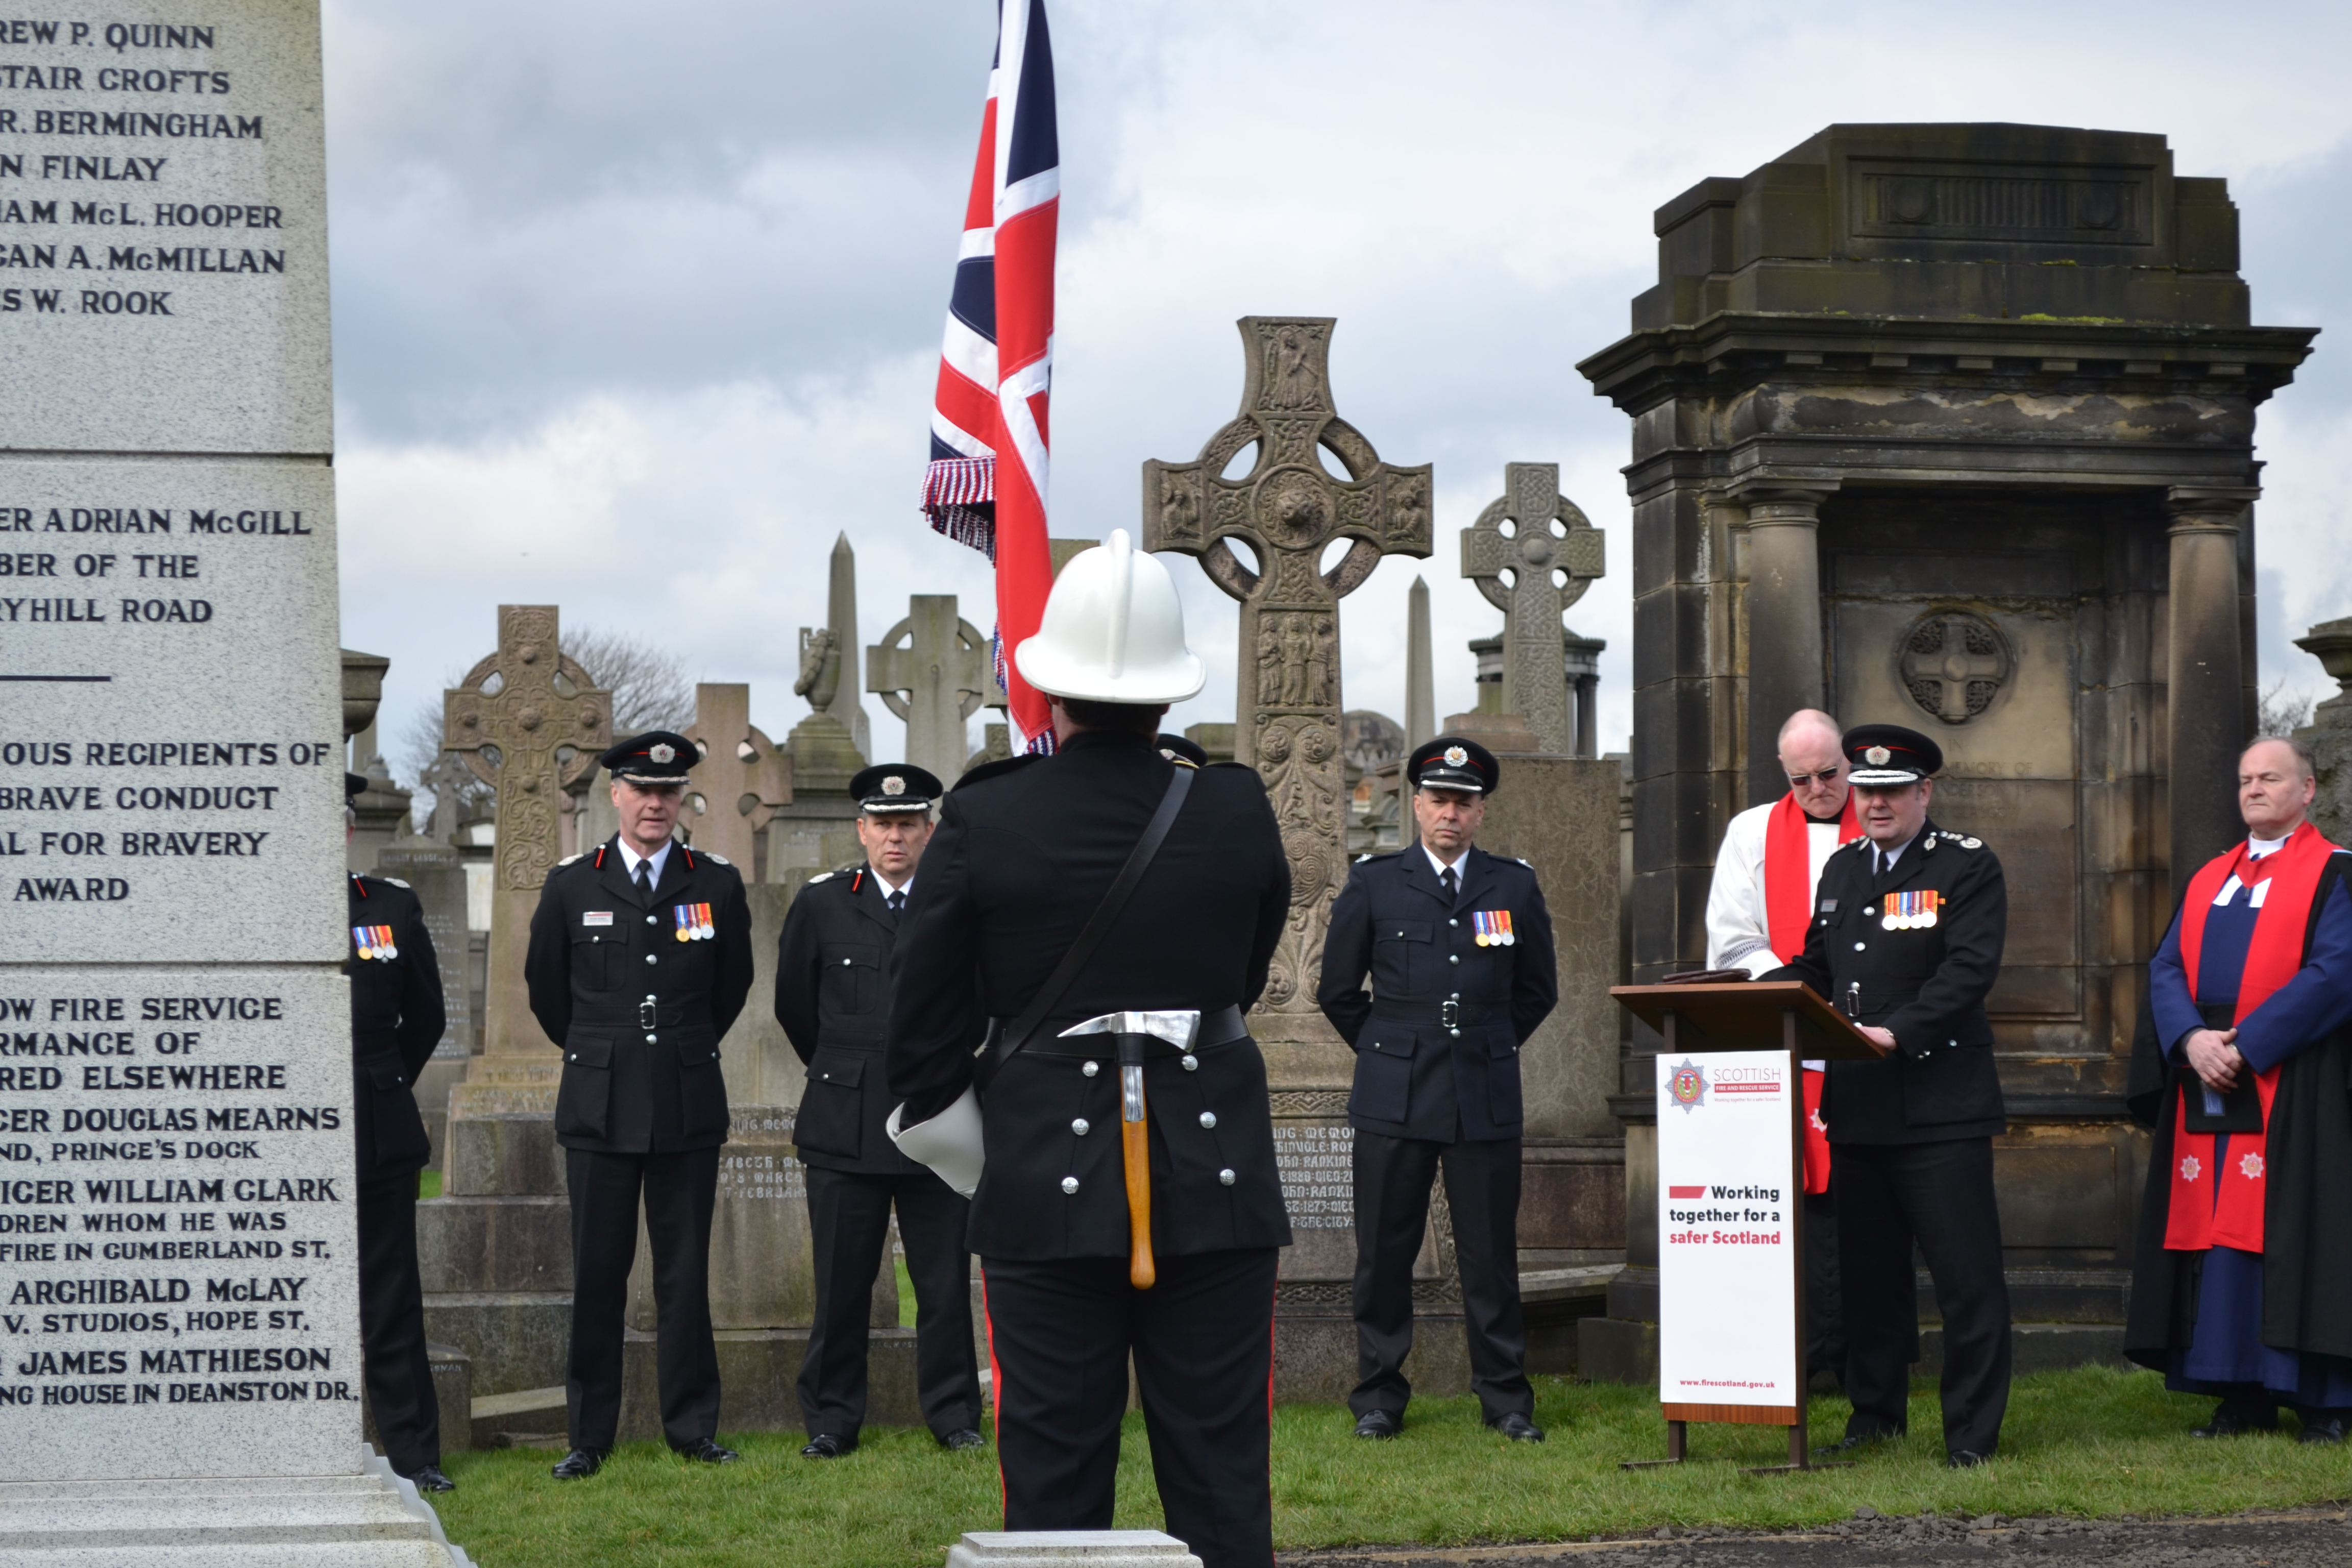 SFRS remembers Glasgow's fallen firefighters